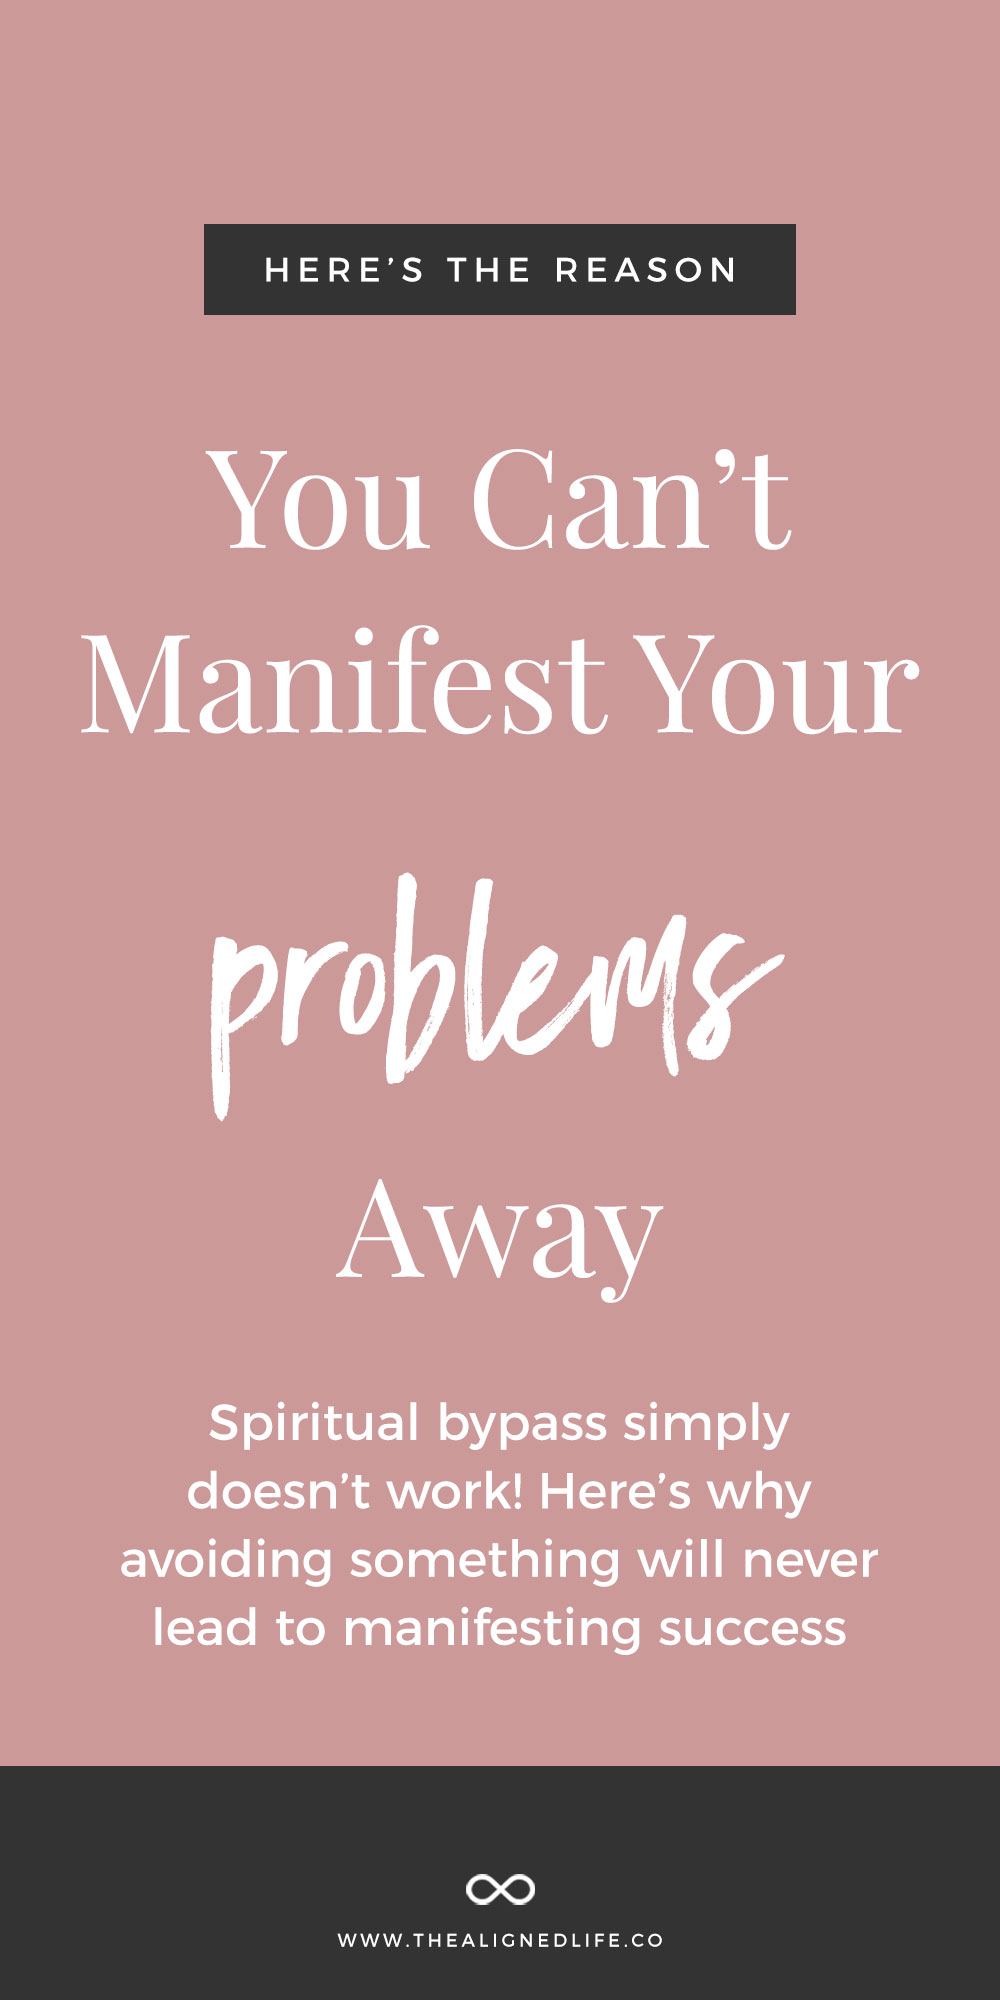 The Reason You Can't Manifest Your Problems Away: Avoidance + The Law of Attraction